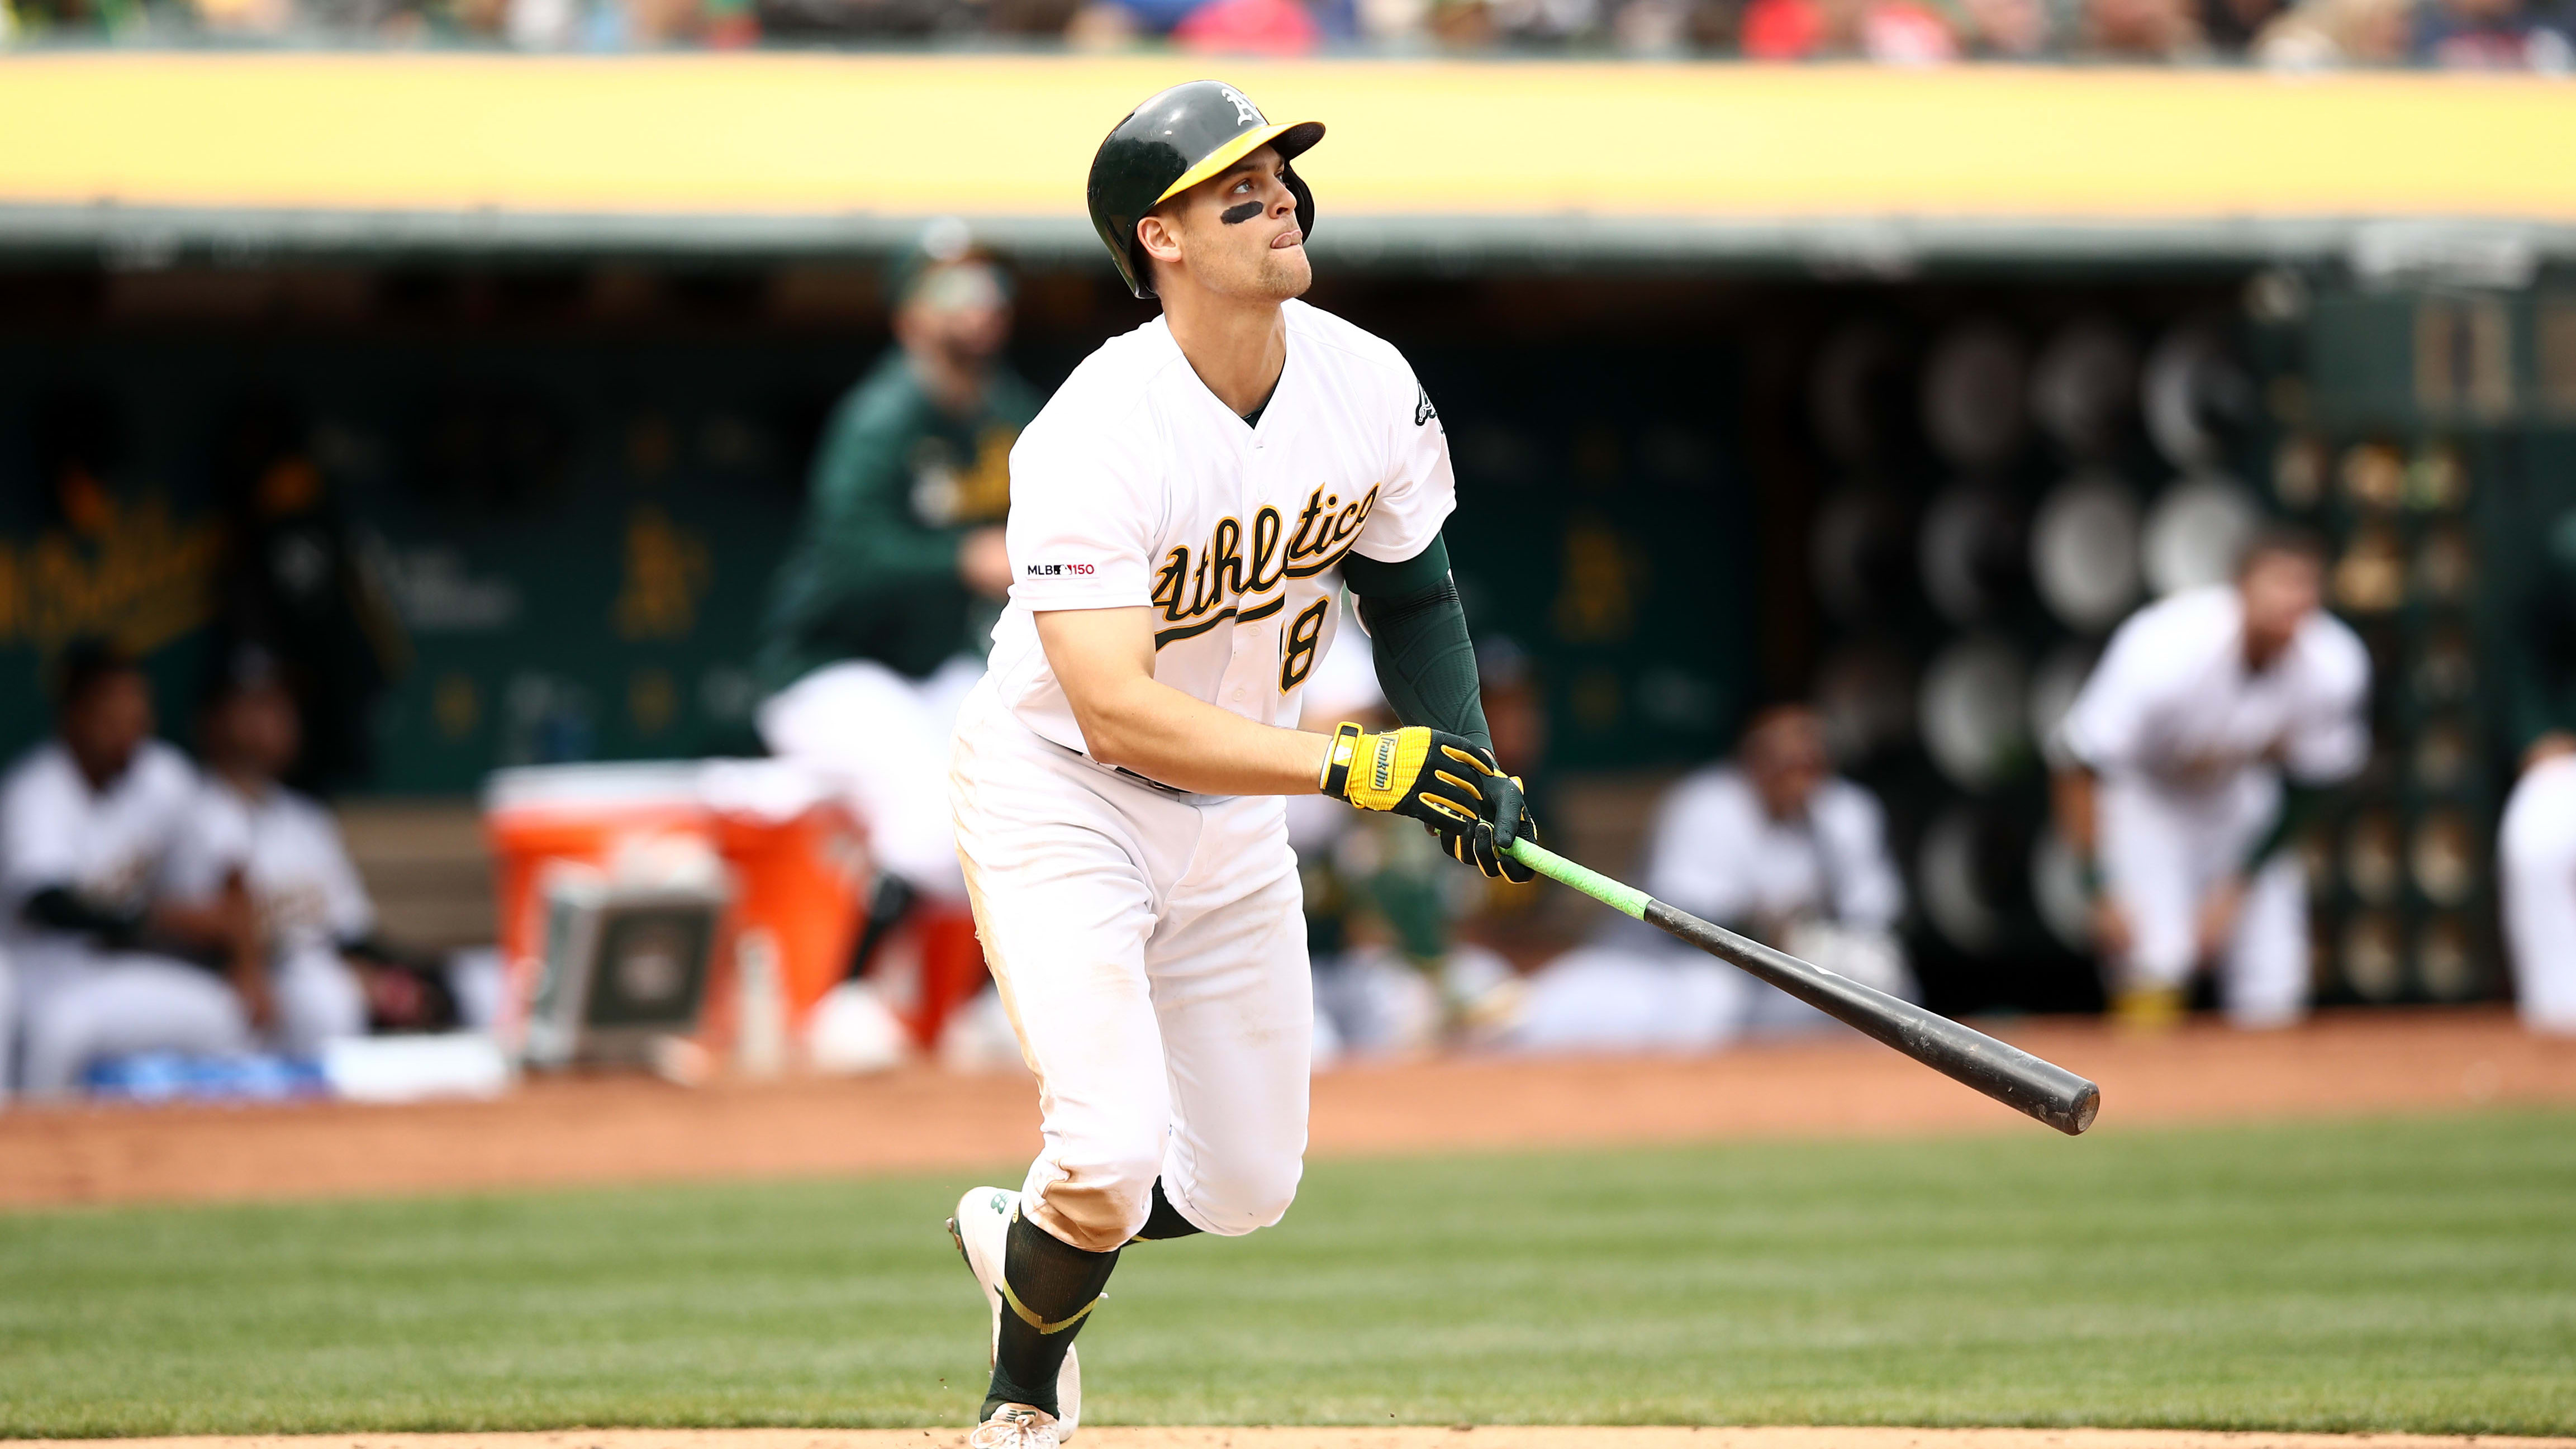 Fantasy Baseball Waiver Wire Pickups for Week 3